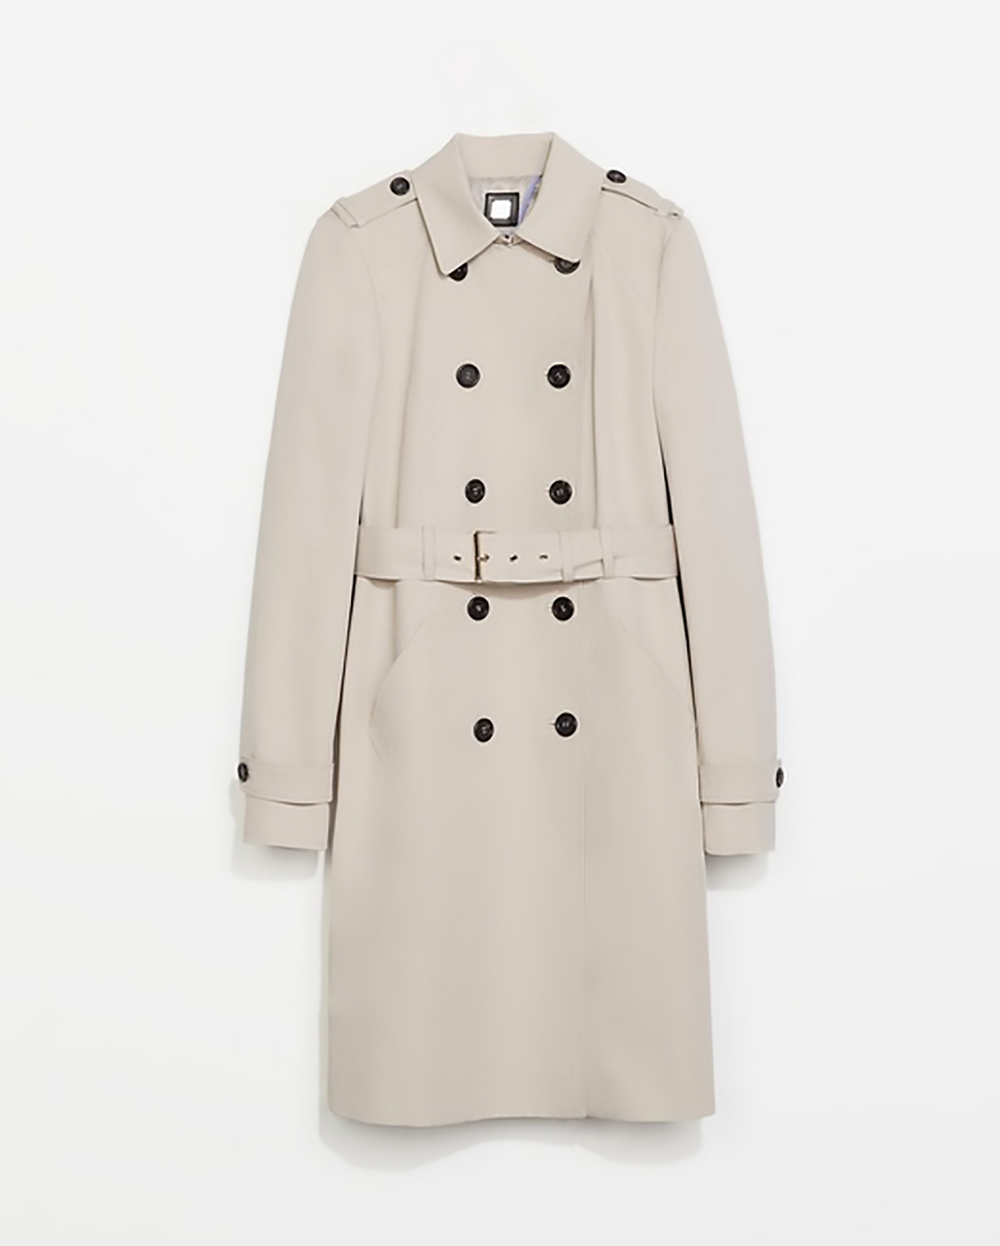 zara UK double breasted trench coat April Showers 1500.jpg